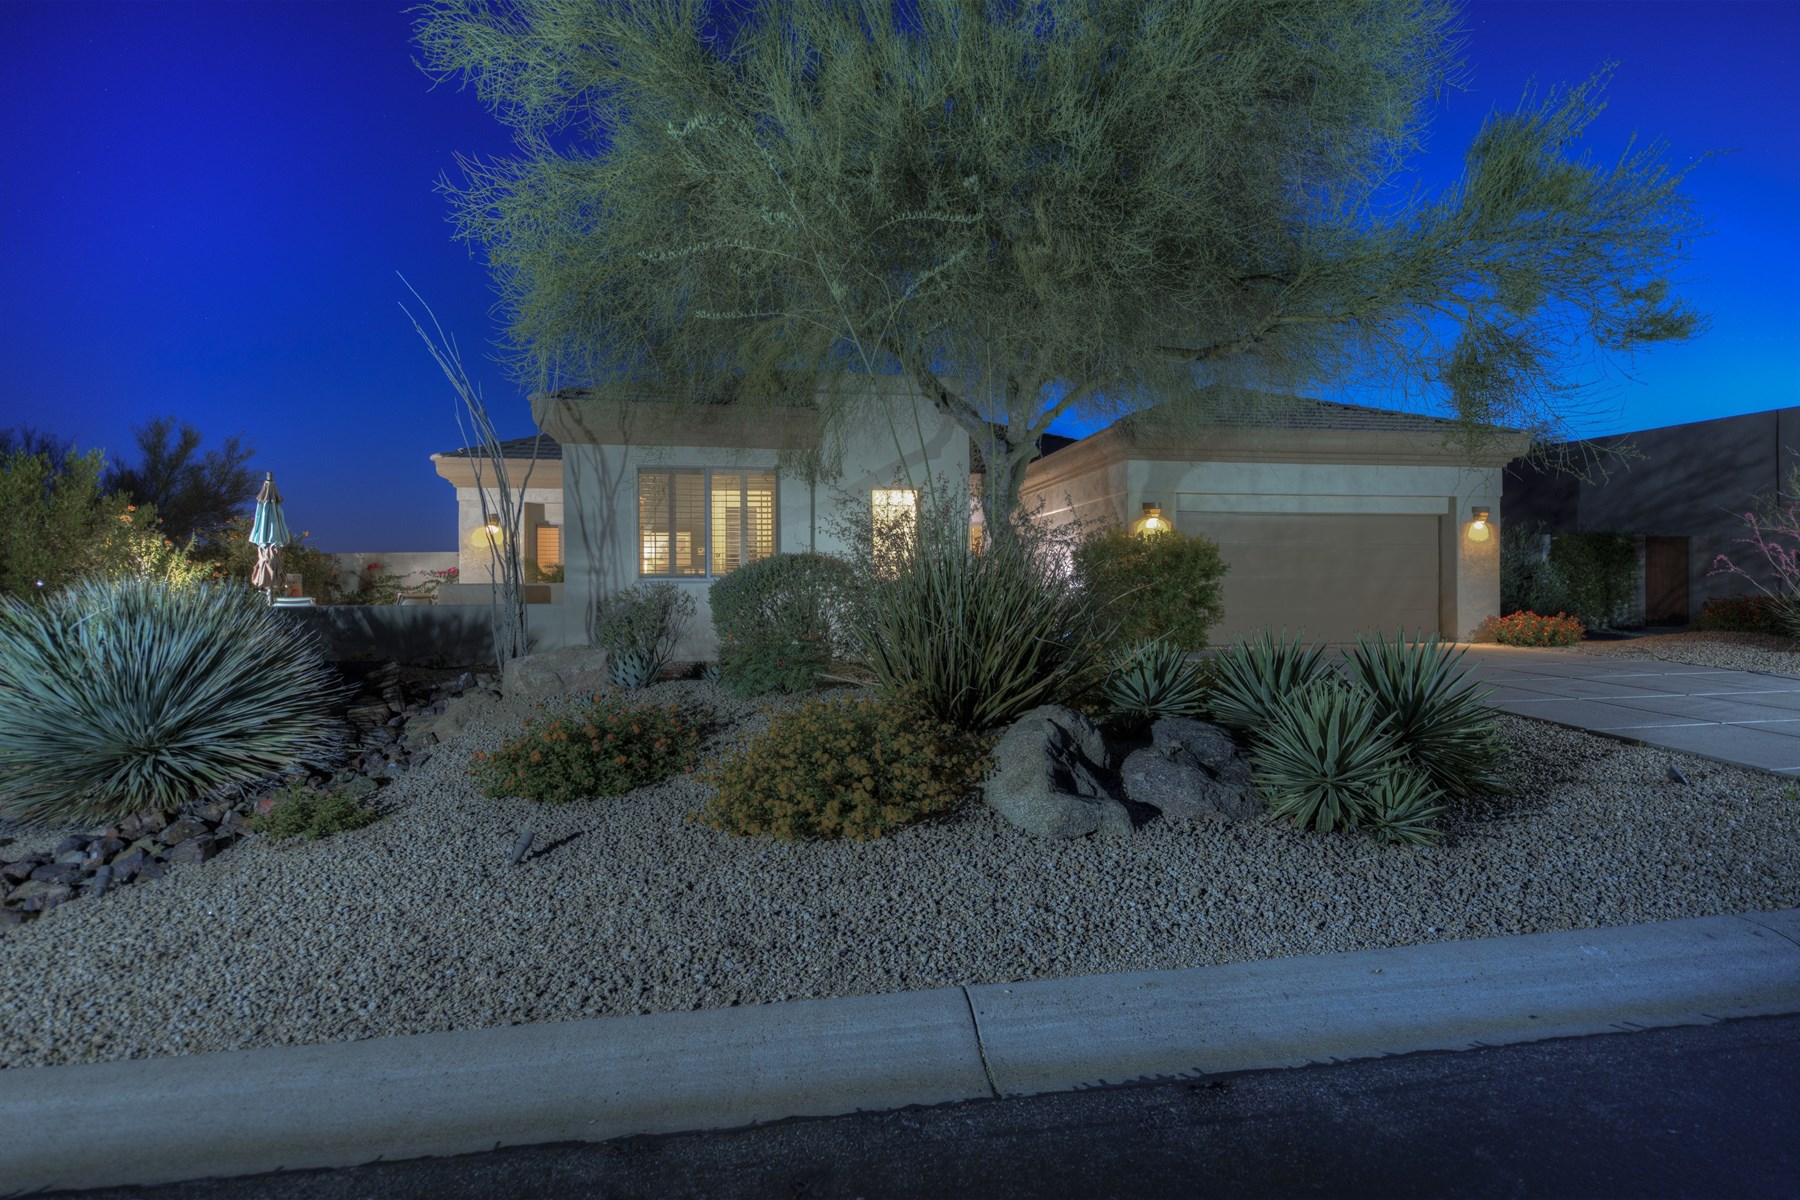 獨棟家庭住宅 為 出售 在 Beautifully Caelum model with a casita 33034 N 71st St Scottsdale, 亞利桑那州, 85266 美國